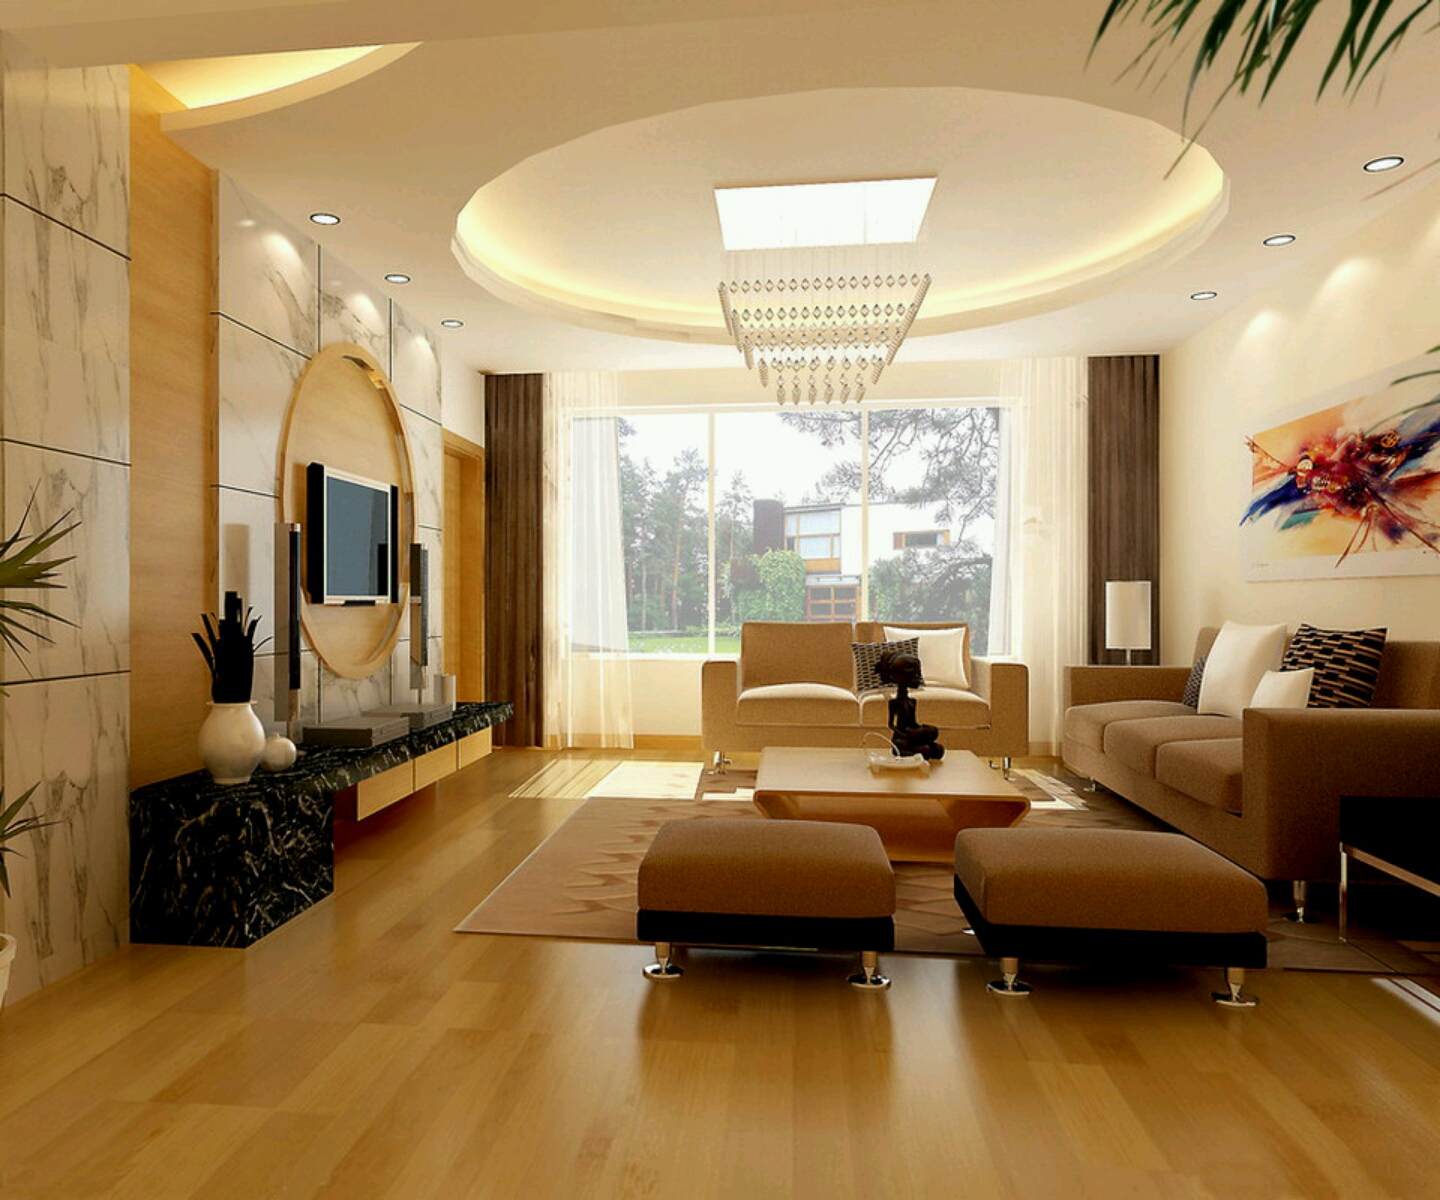 Modern interior decoration living rooms ceiling designs for Interior design ideas white living room